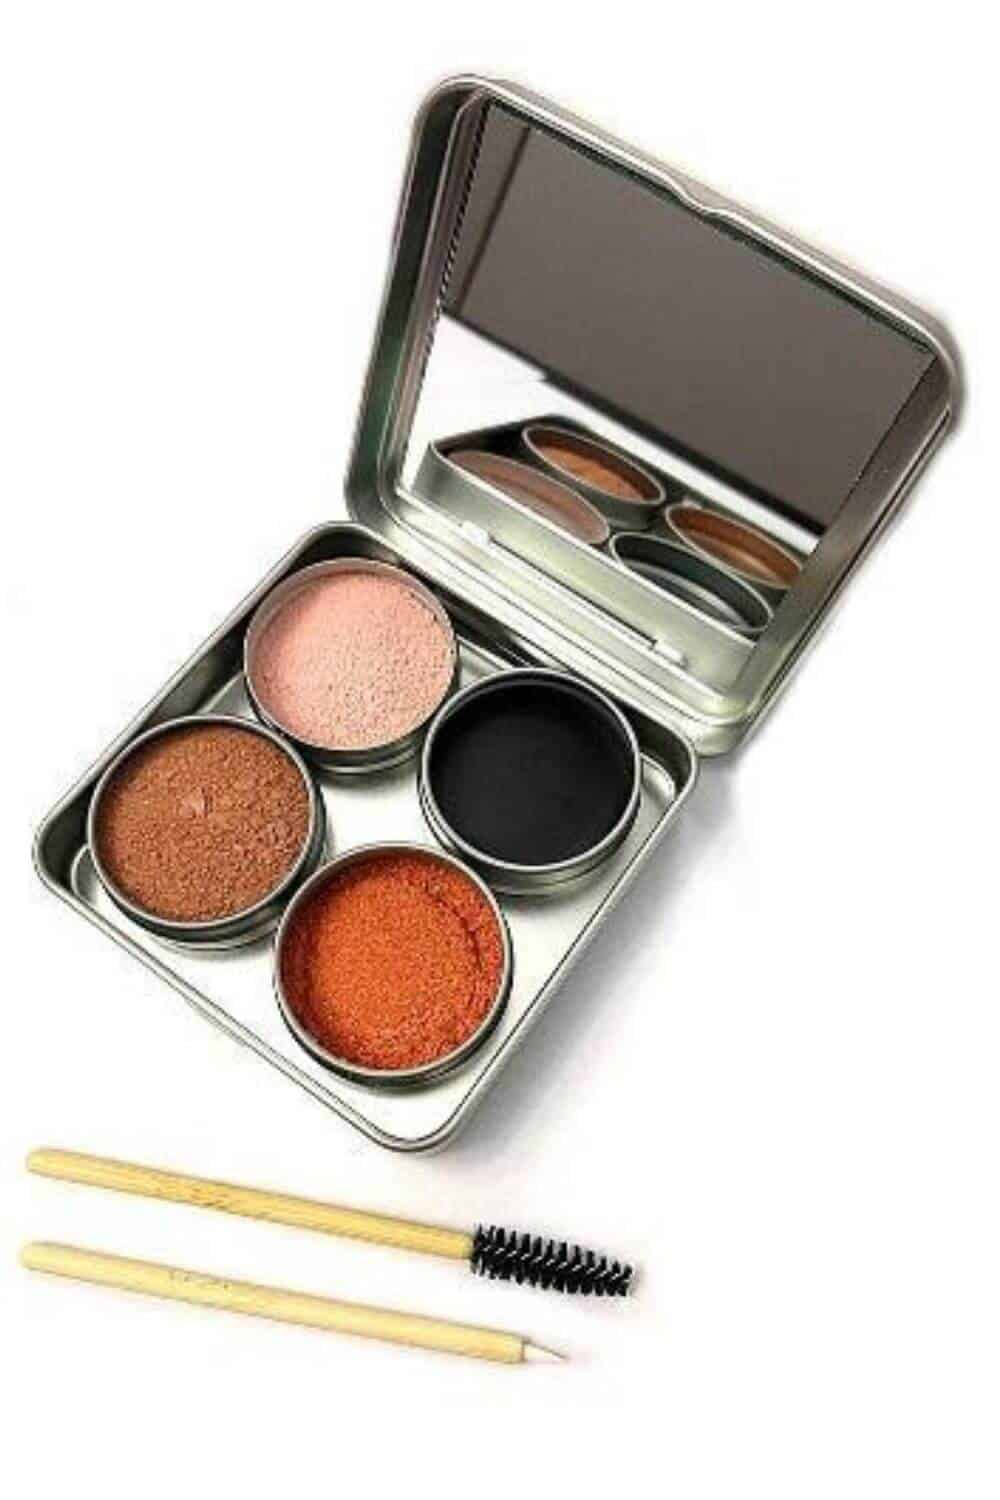 On the look out for sustainable and eco friendly makeup? Thankfully, there are quite a few ethical makeup brands out there to choose from. And many are available and based in the UK and US! Image by Clean Faced Cosmetics #ecofriendlymakeup #sustainablejungle